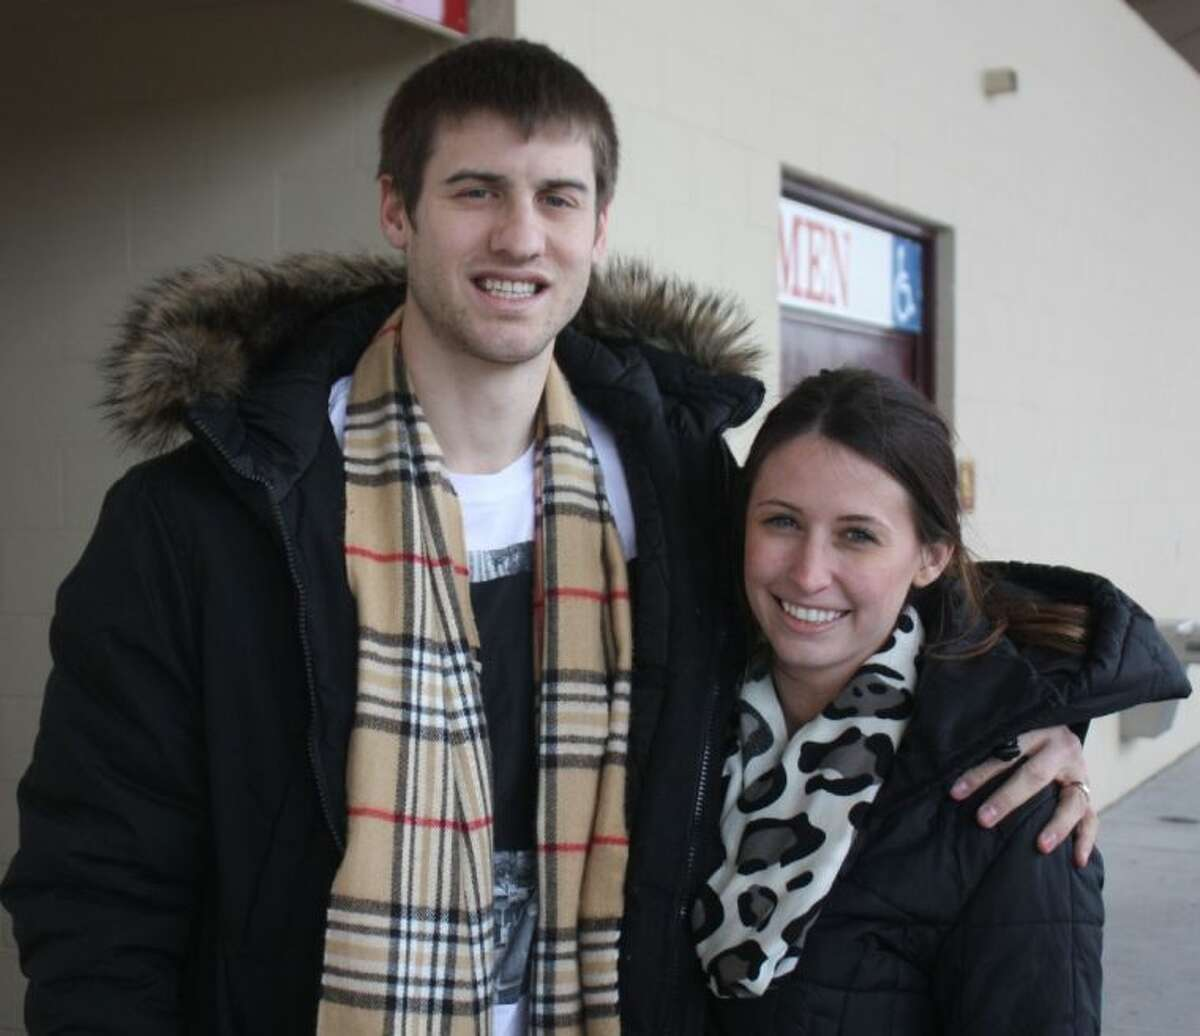 Nathan Walkup and his wife Jacy say goodbye to Deer Park today as they fly back to the little European country of Luxembourg and Walkup's final five months of that country's professional basketball league. Luxembourg hoop fans have gotten a taste to what Walkup did for Deer Park's varsity program for four seasons, including a pair of MVP seasons.